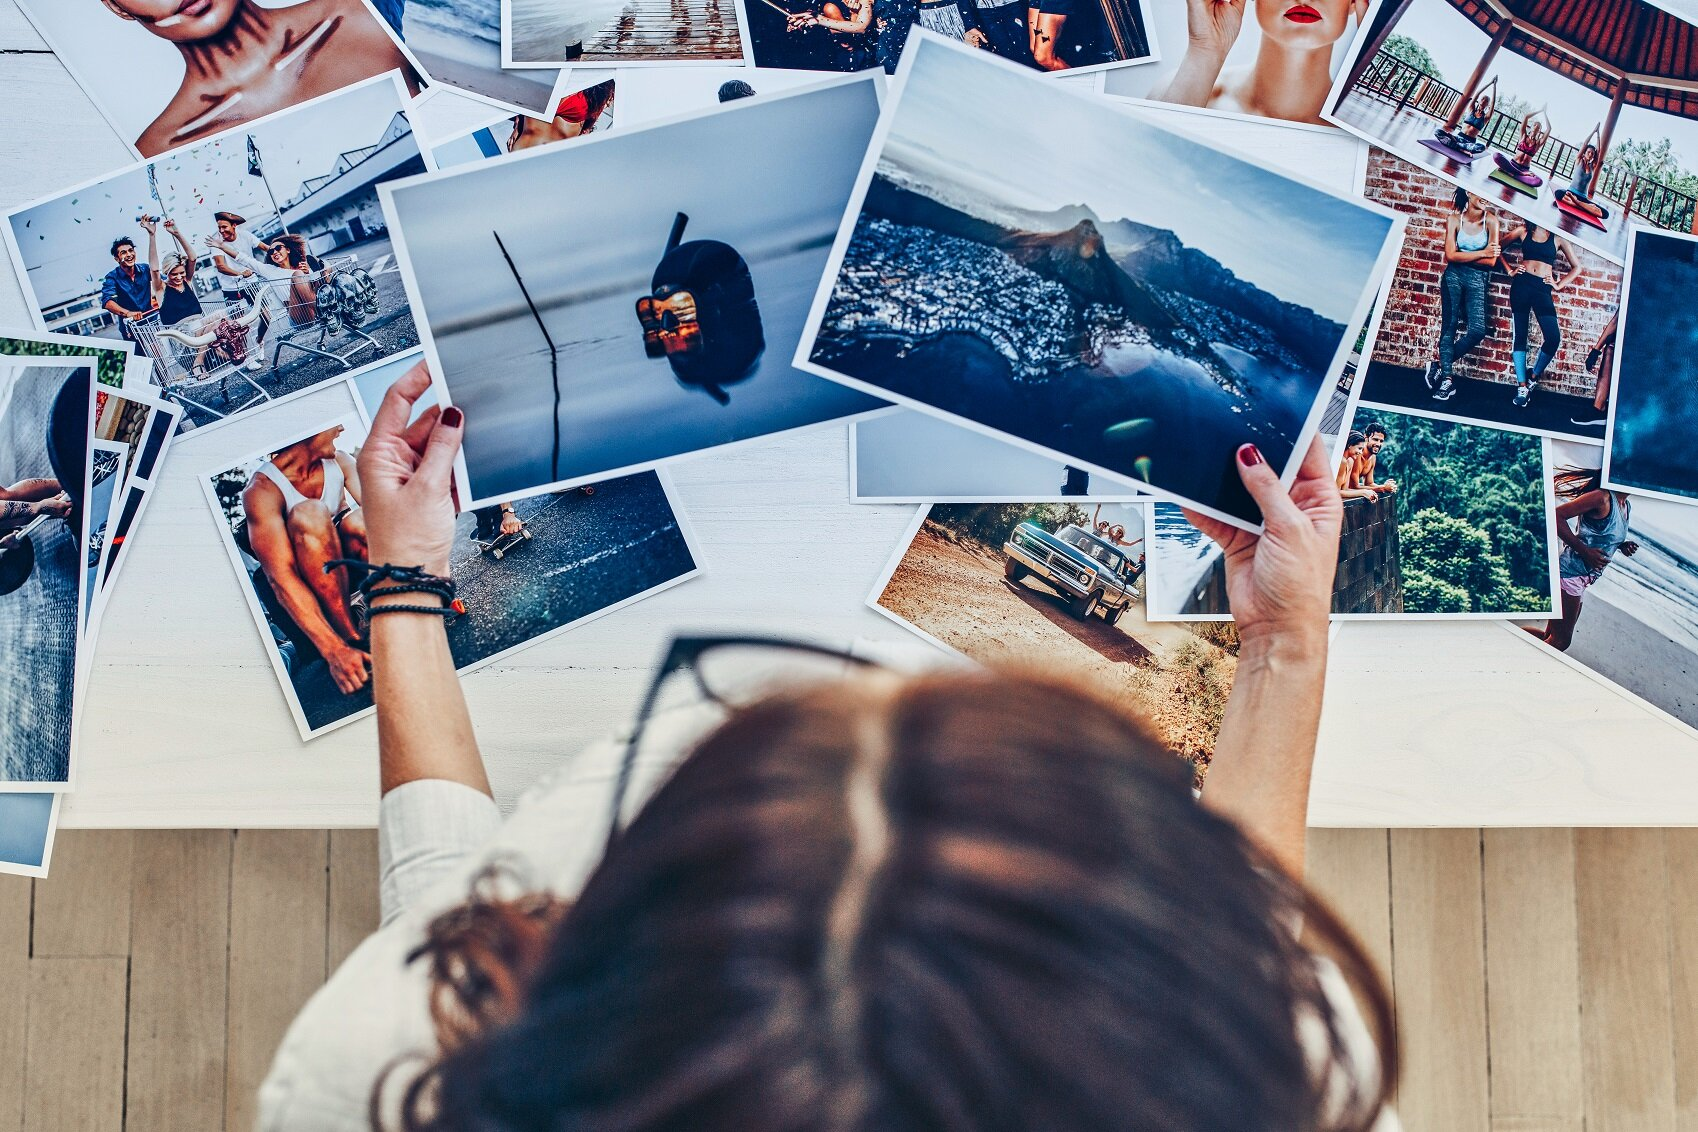 Memory is more like photos, plus Photoshop, than just the images alone - Image Credit: Jacob Lund via shutterstock / HDR tune by Universal-Sci